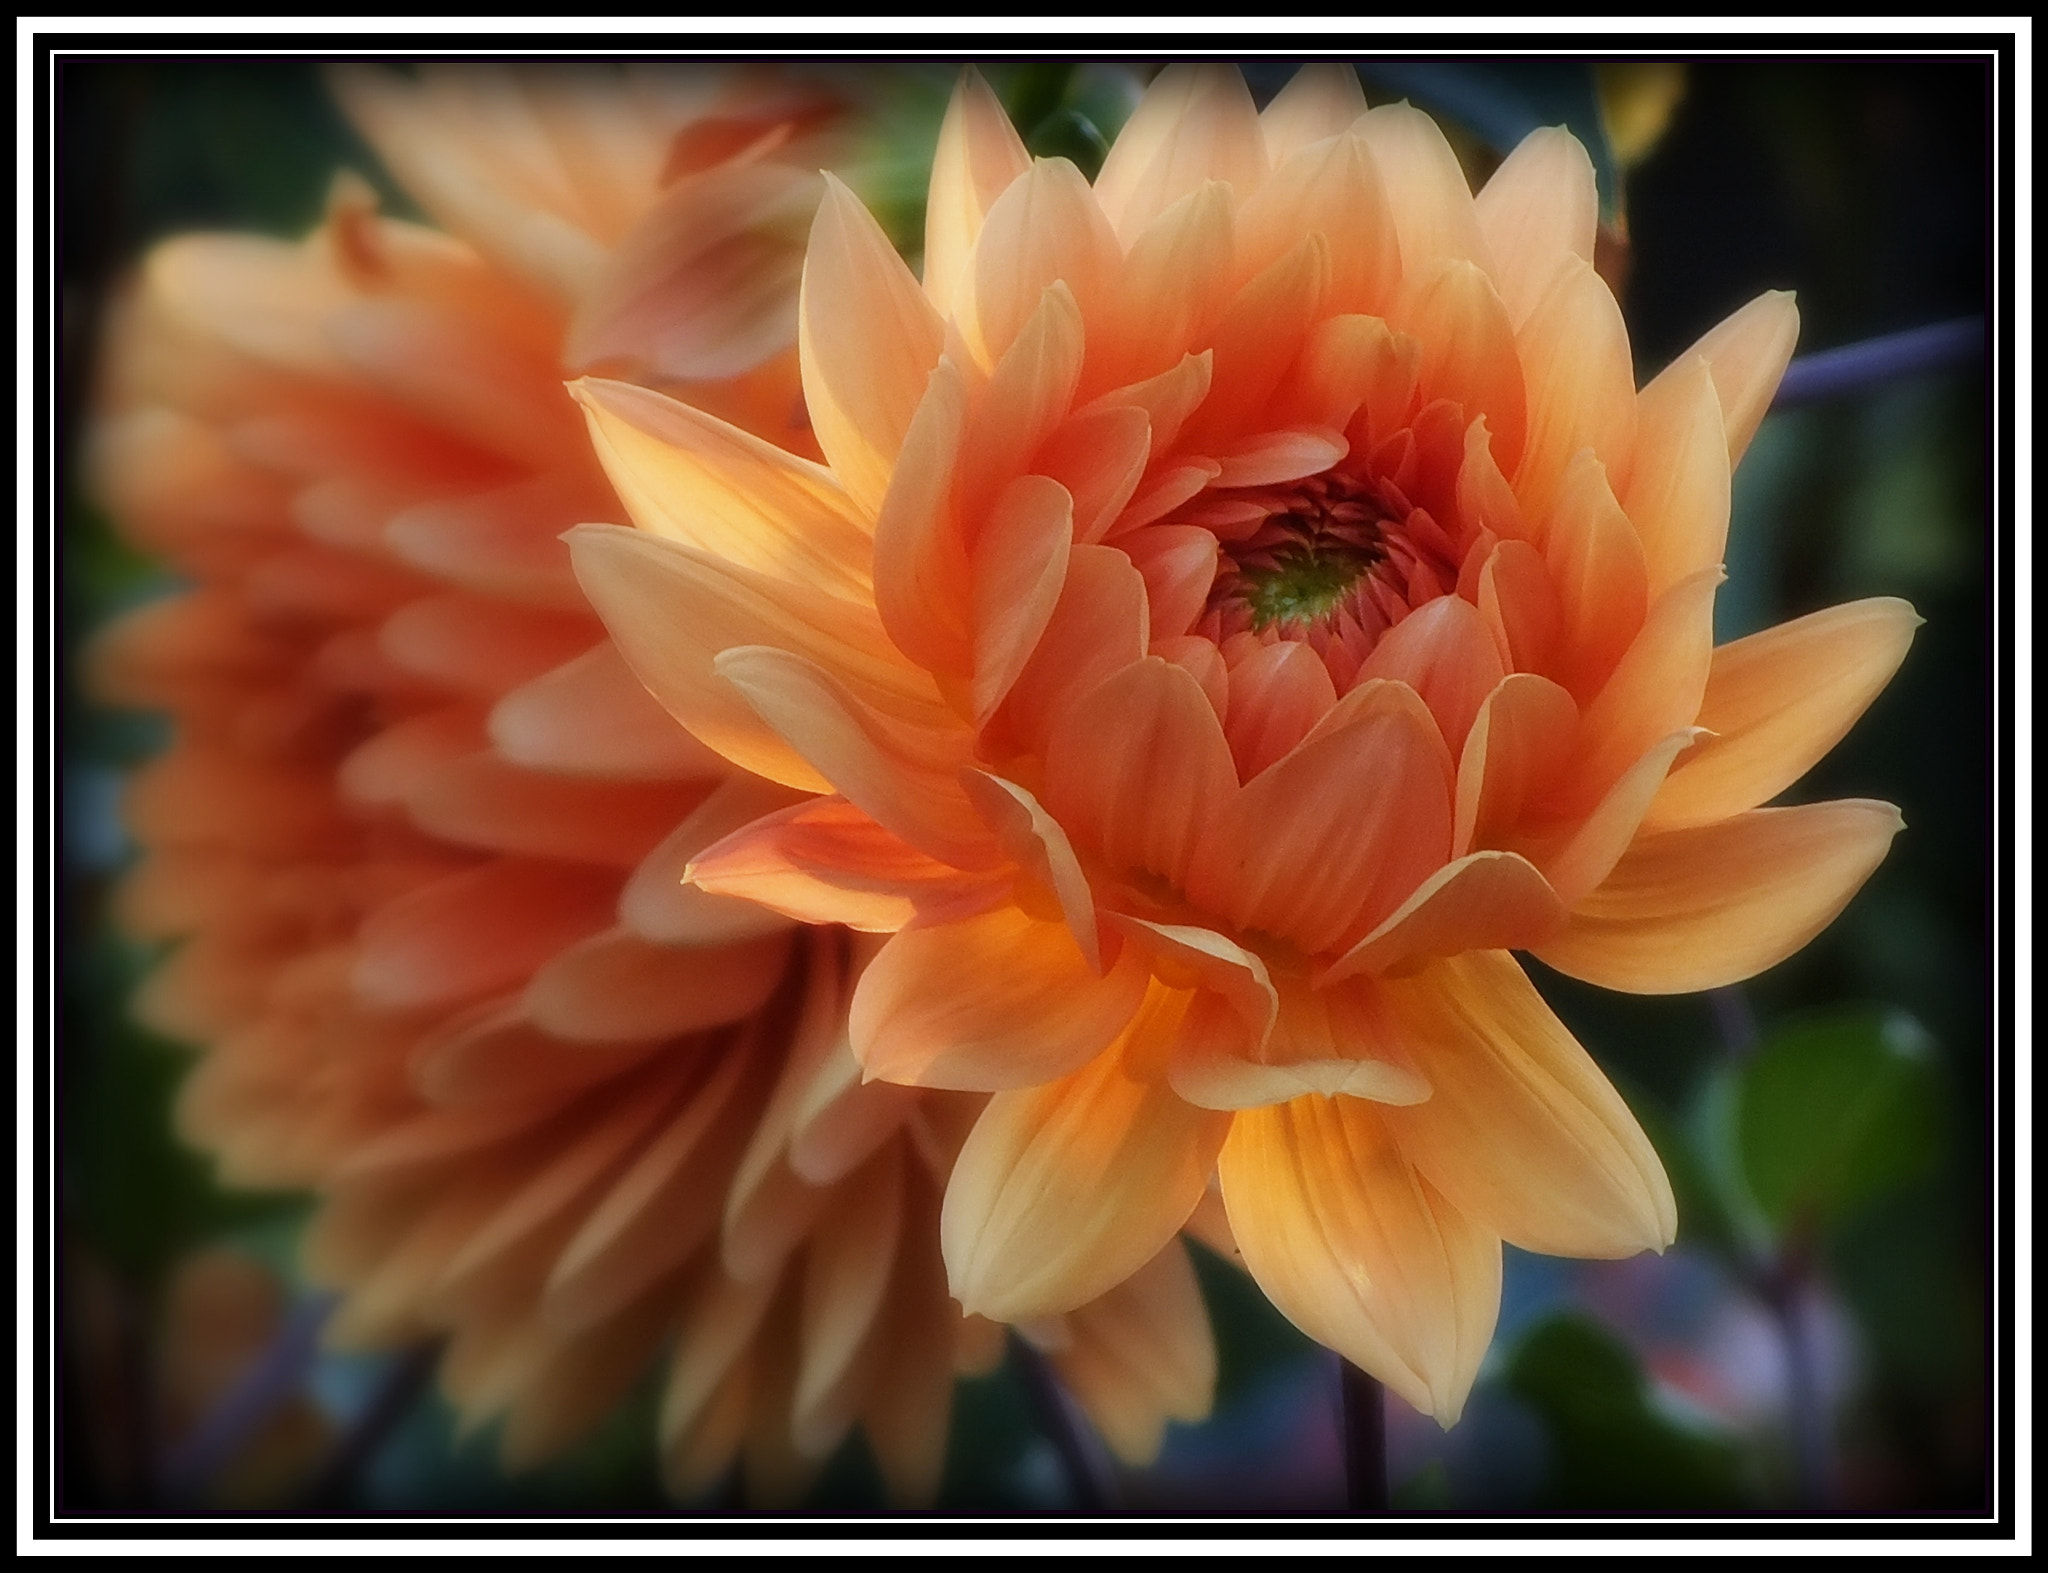 Photograph Summer Remembered by H. Becker on 500px